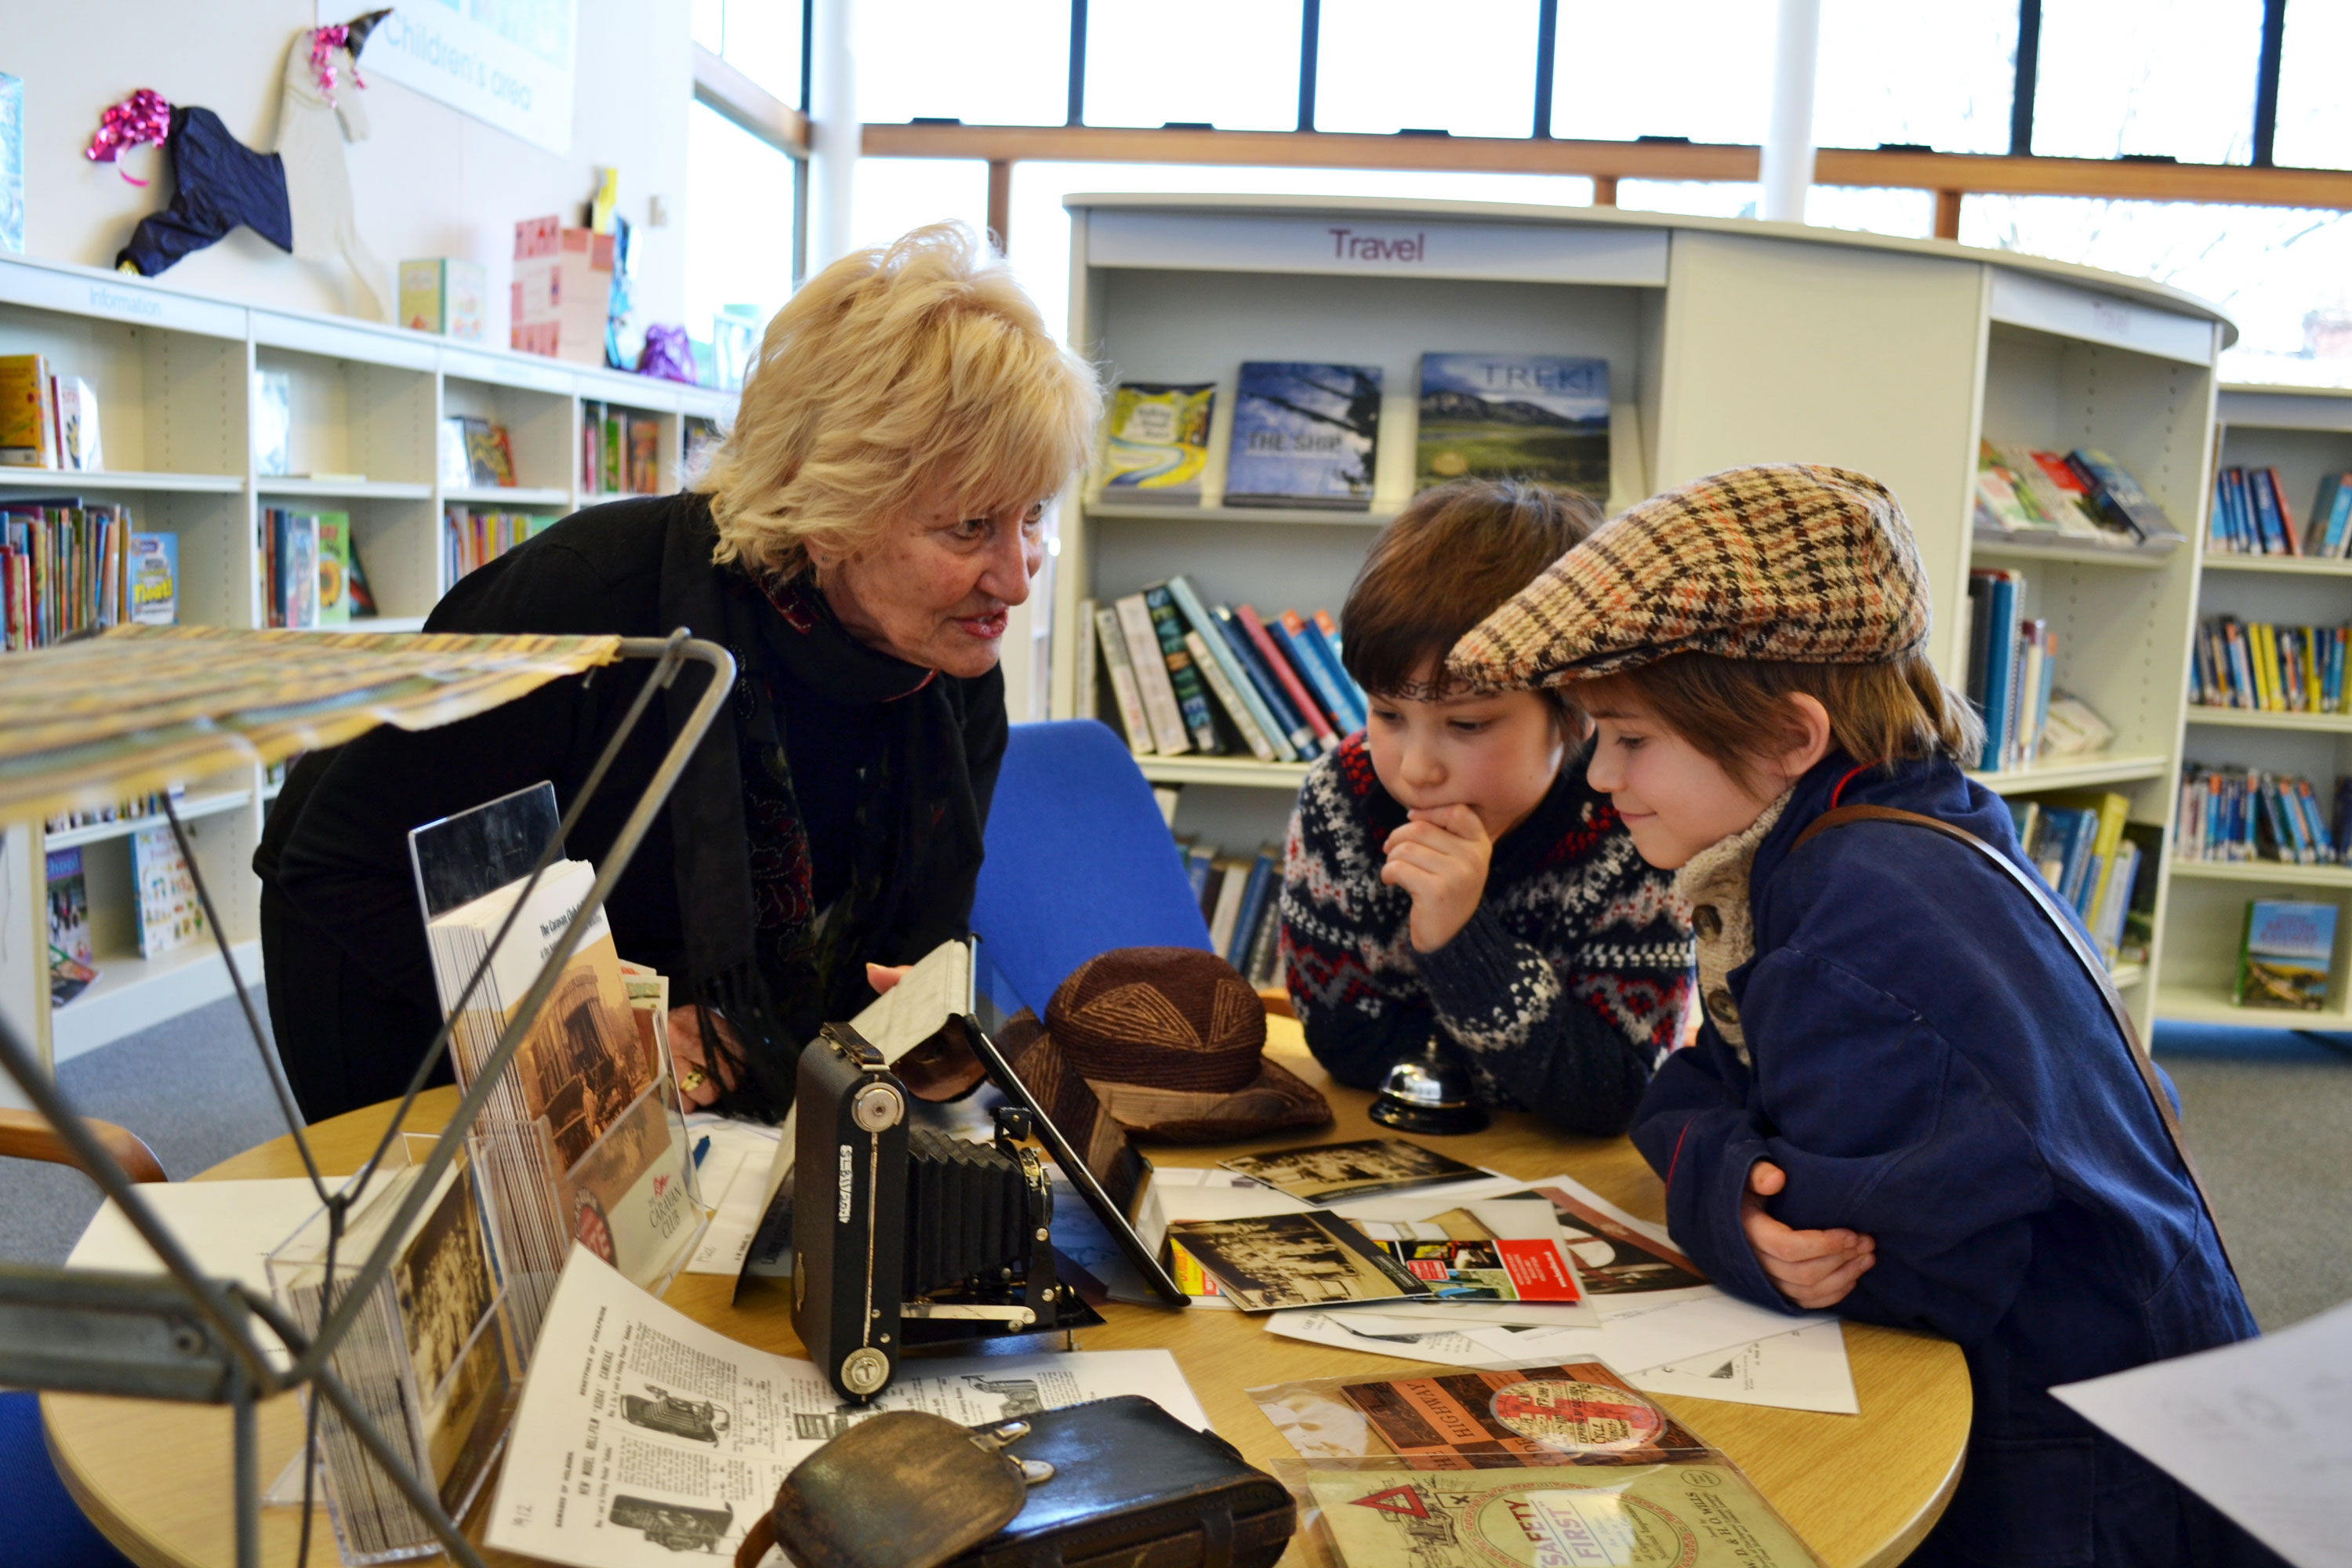 In a local library a woman shows two children some objects from the Caravan and Motorhome Club Collection